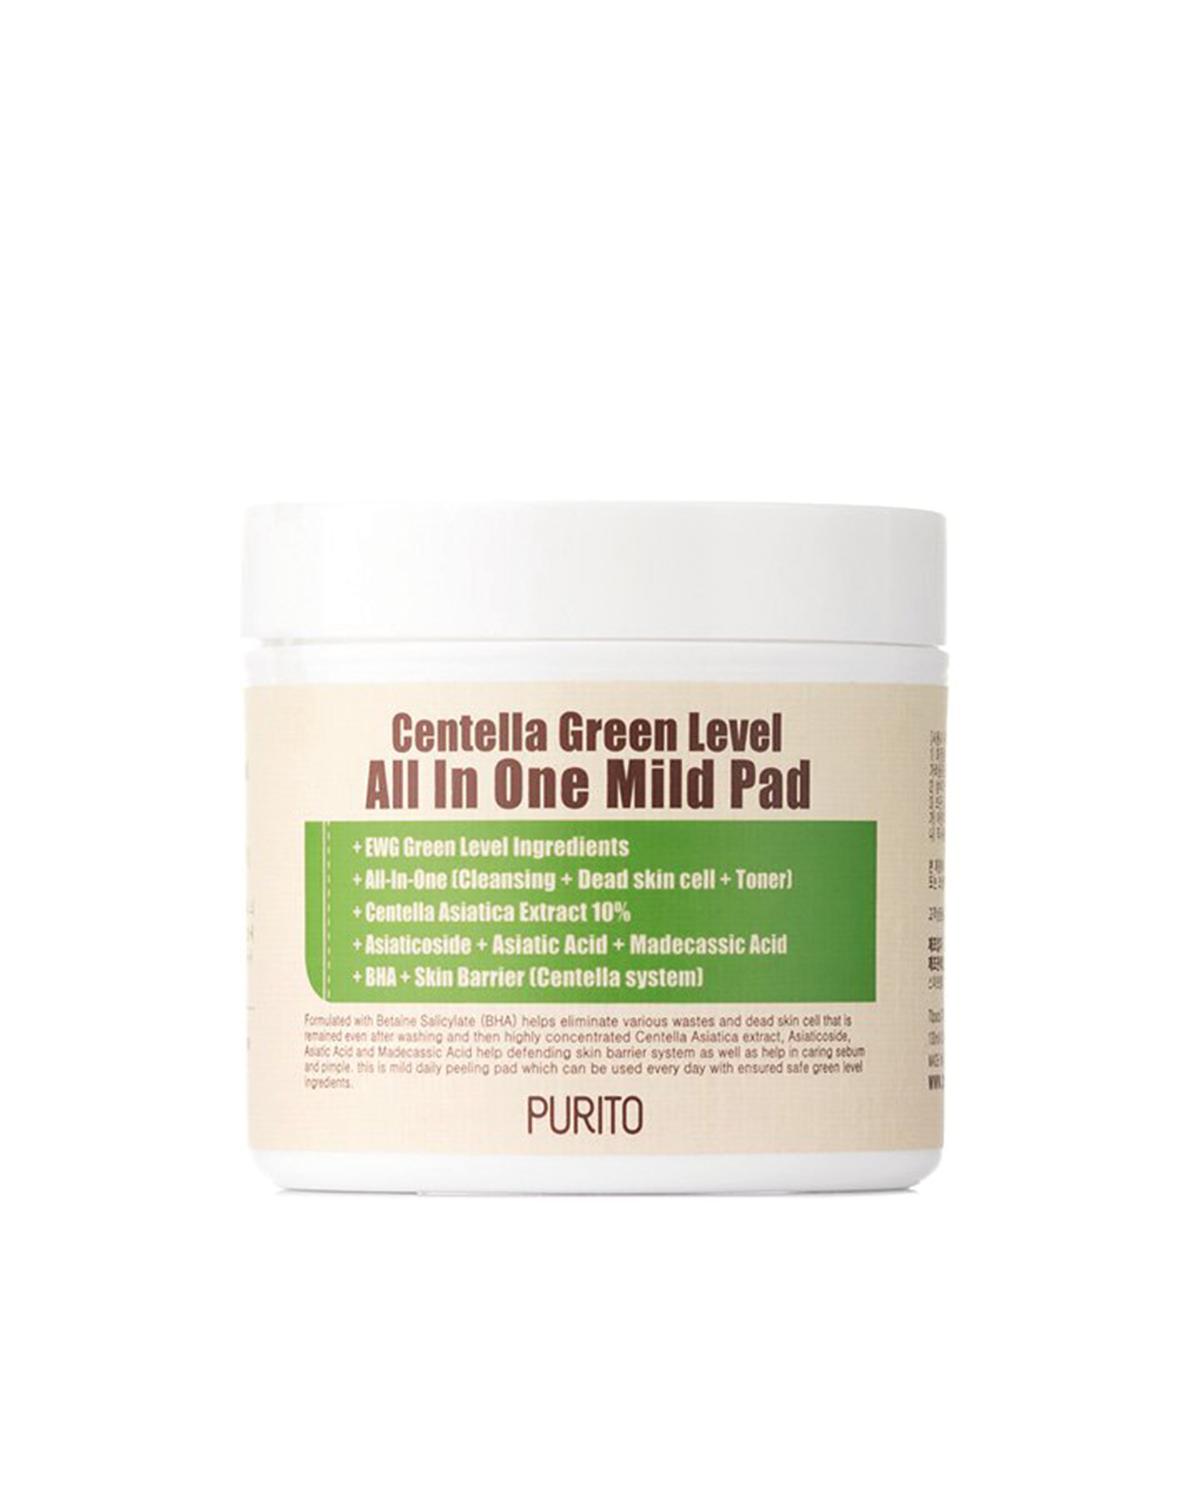 PURITO Centella Green Level All In One Mild Pad 60 ea / 130 ml